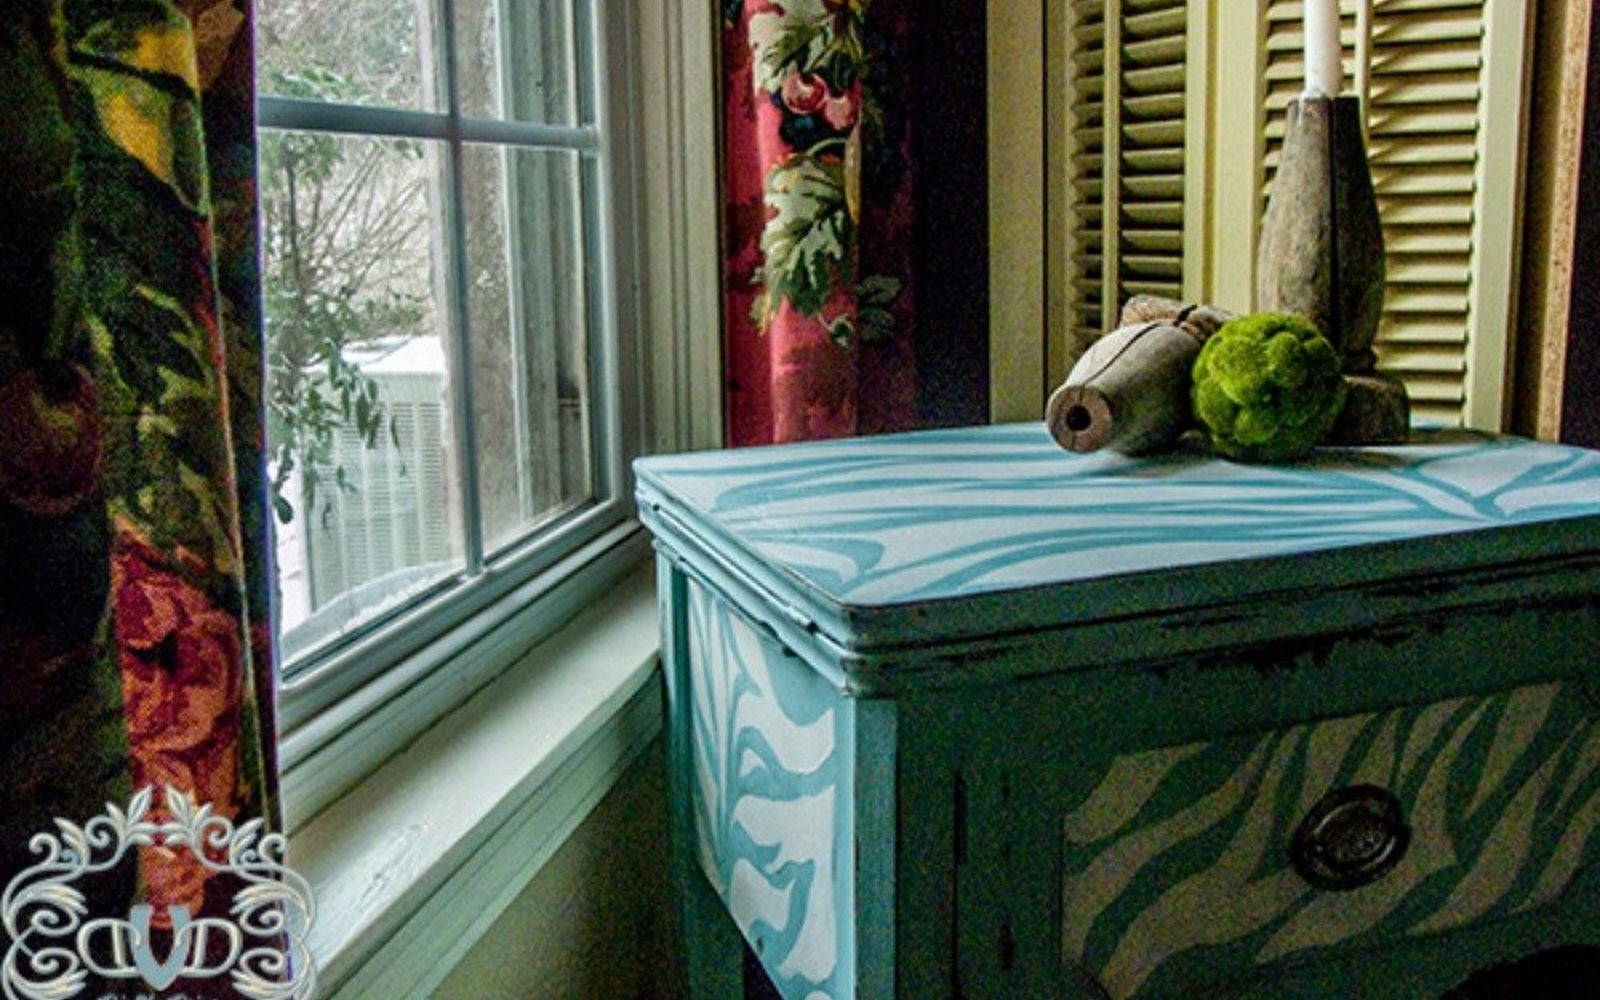 s 12 wildly creative ways to use your old sewing table, painted furniture, Paint it with a pattern and texture